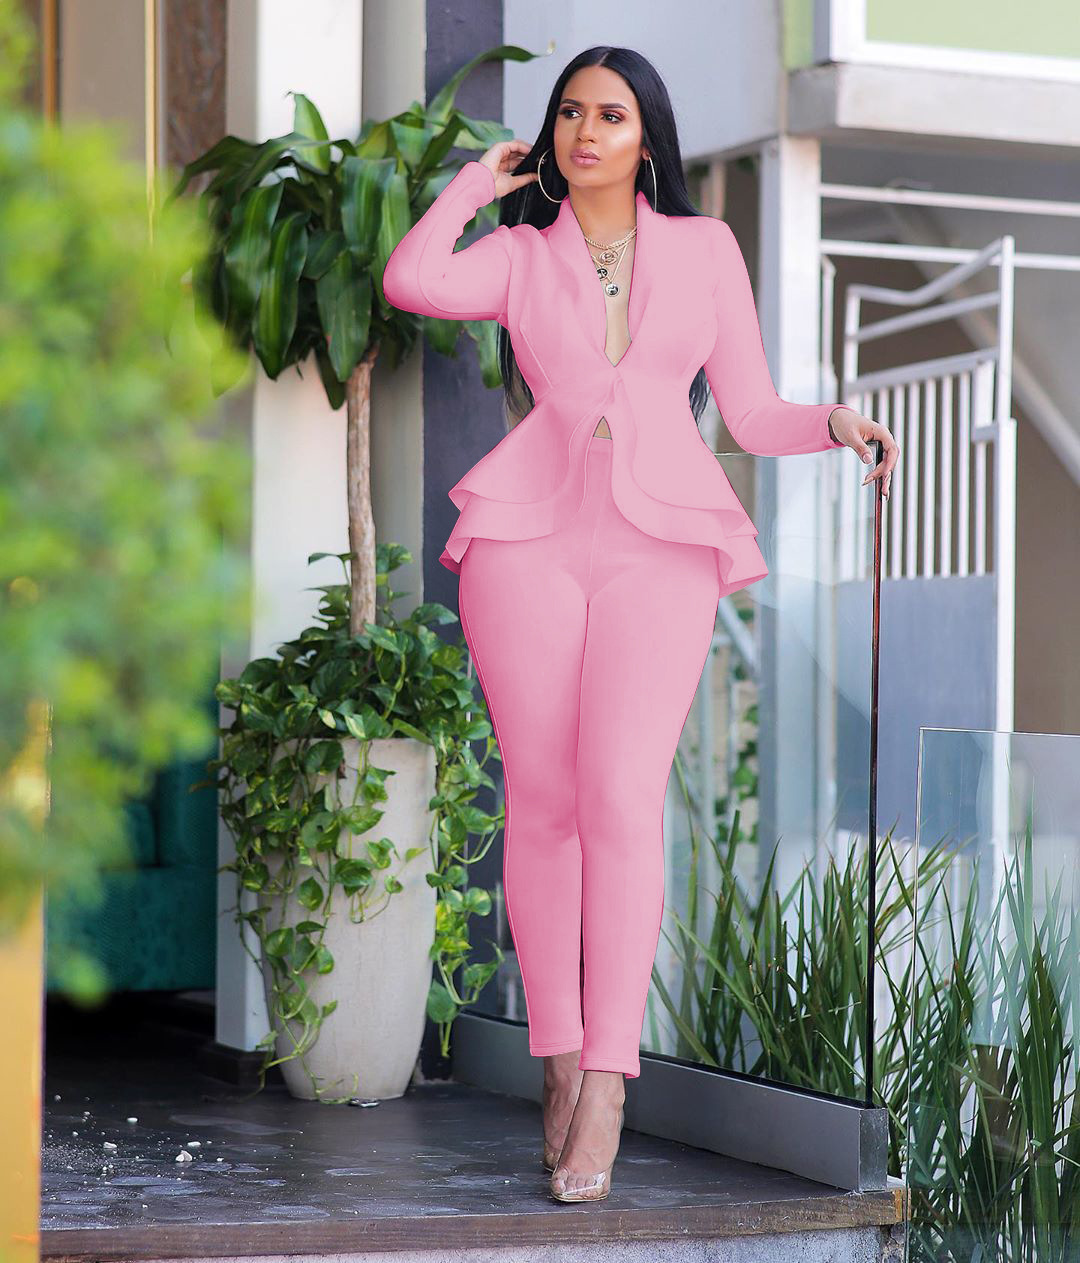 H6091b6b5dc464a25a6c852506b70d29bA - Winter 2 Piece Set Blazer Women Work Wear Full Sleeve Ruffles Pencil Pants Suit Two Piece Set Office Lady Outfits baclk uniform